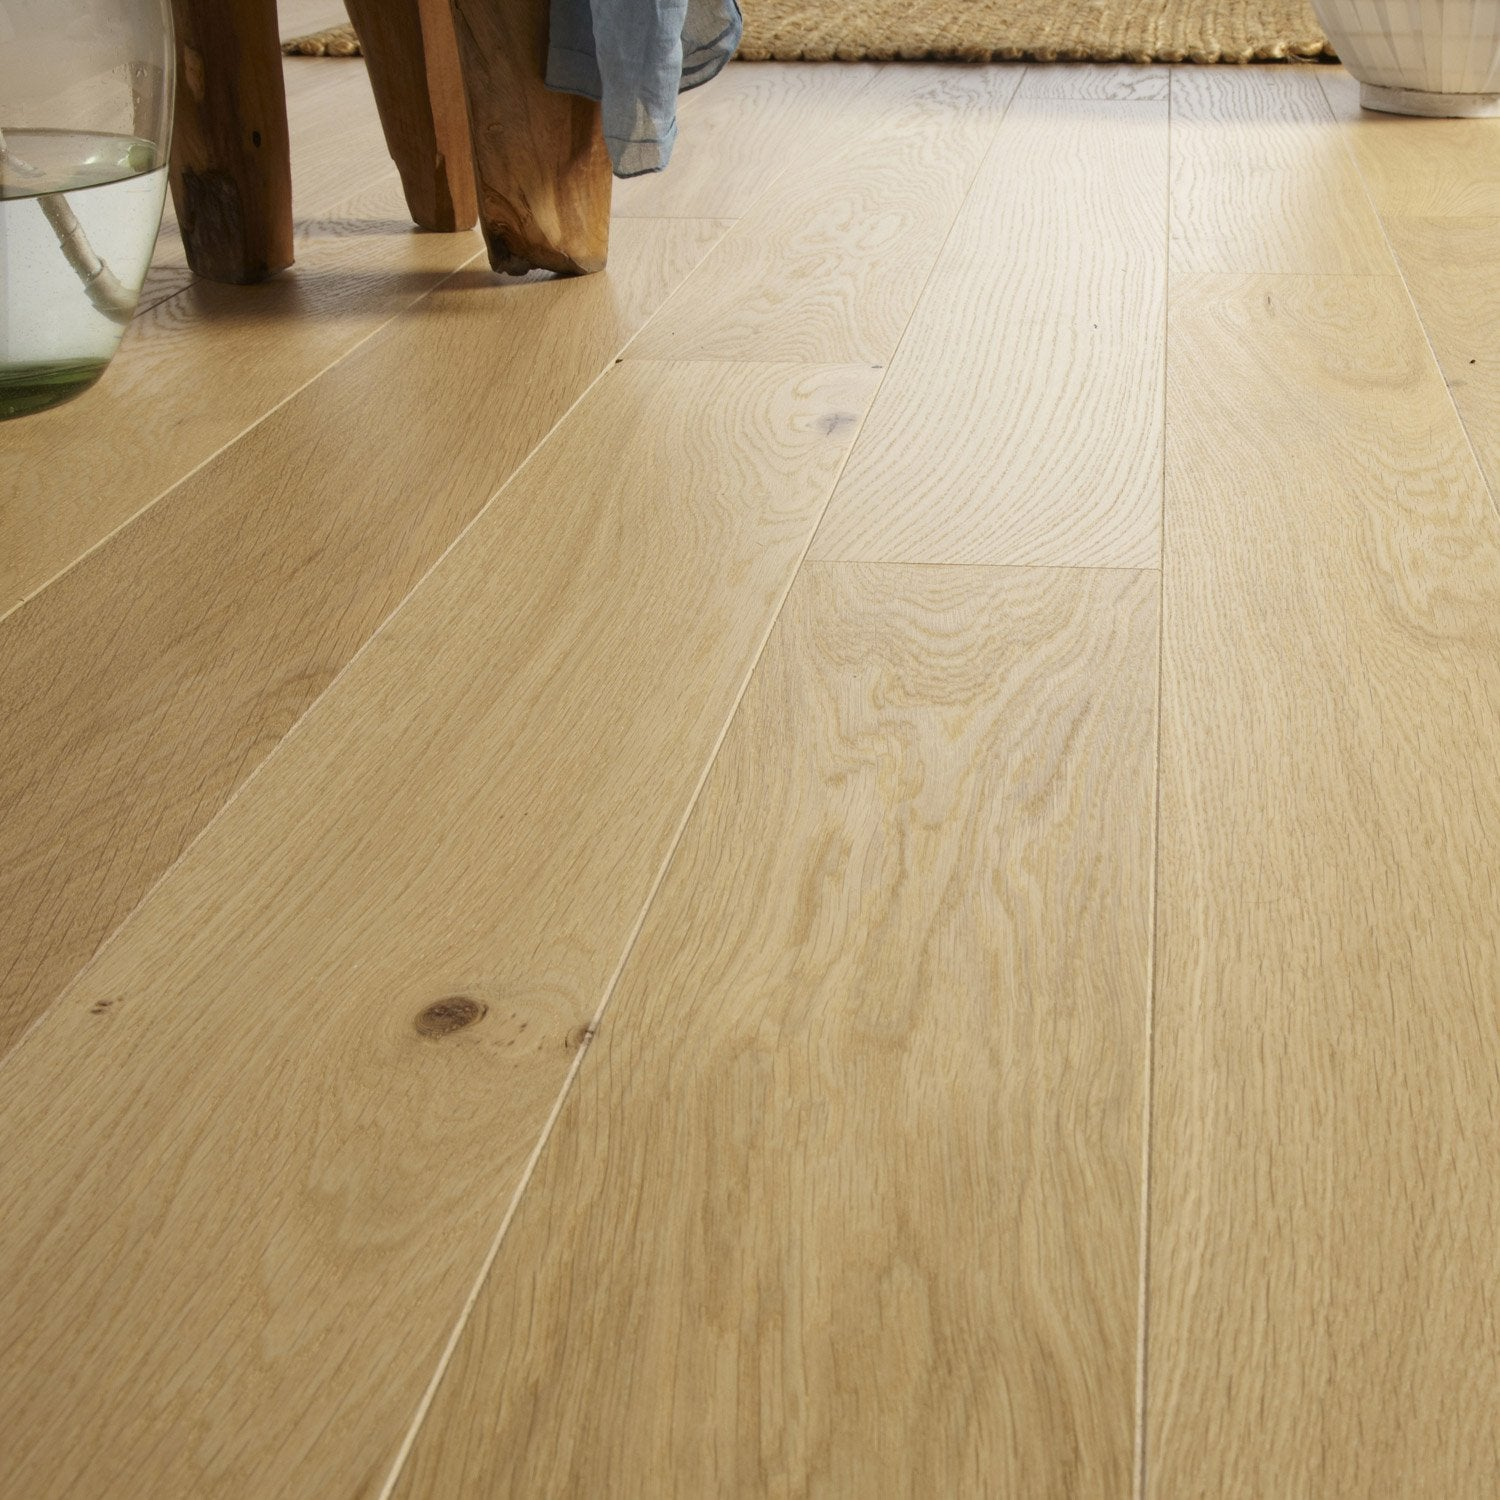 Parquet contrecoll ch ne naturel huil l chene de france for Salon parquet